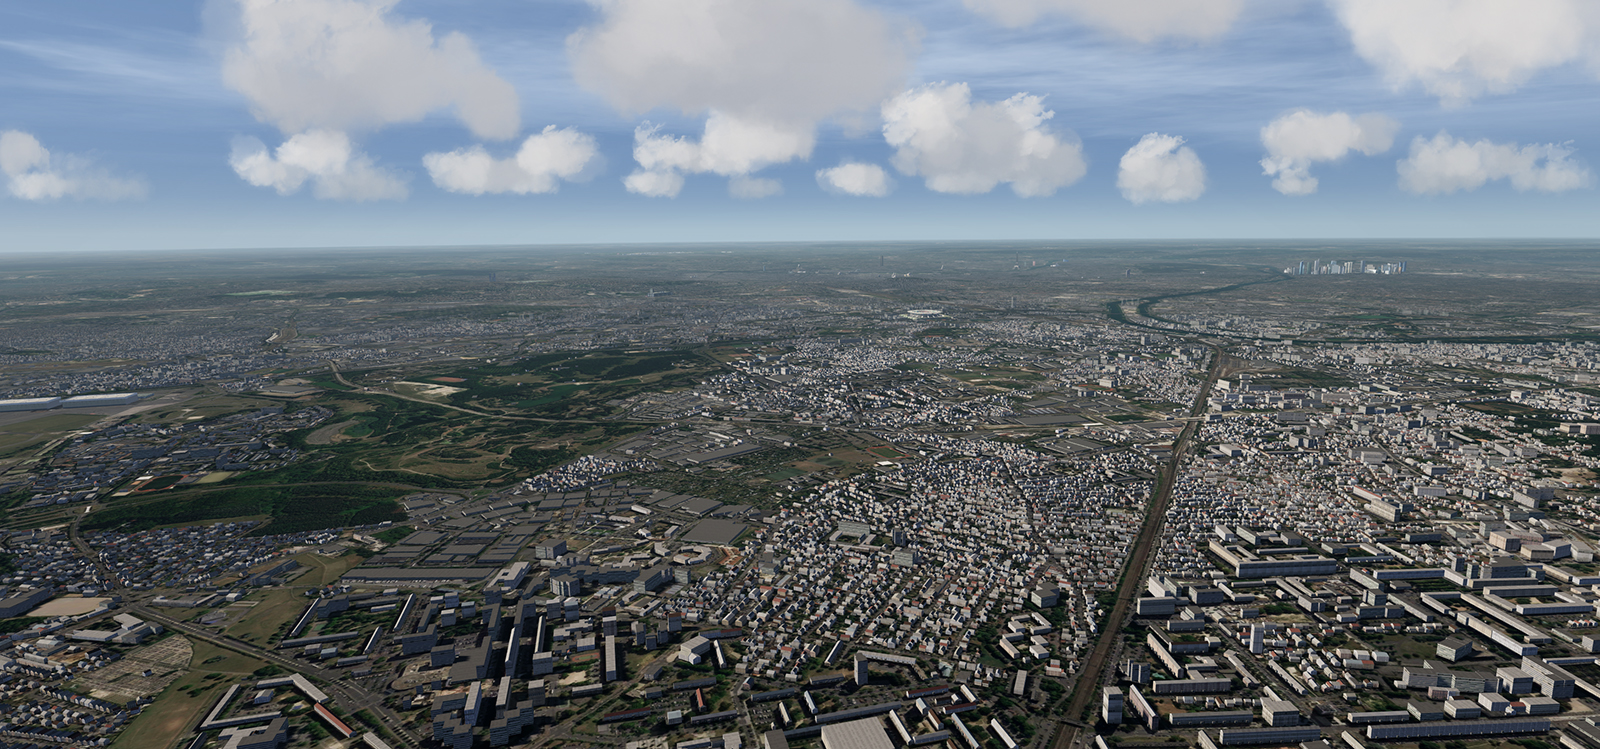 aerofly_fs_2_screenshot_14_20191005-2310